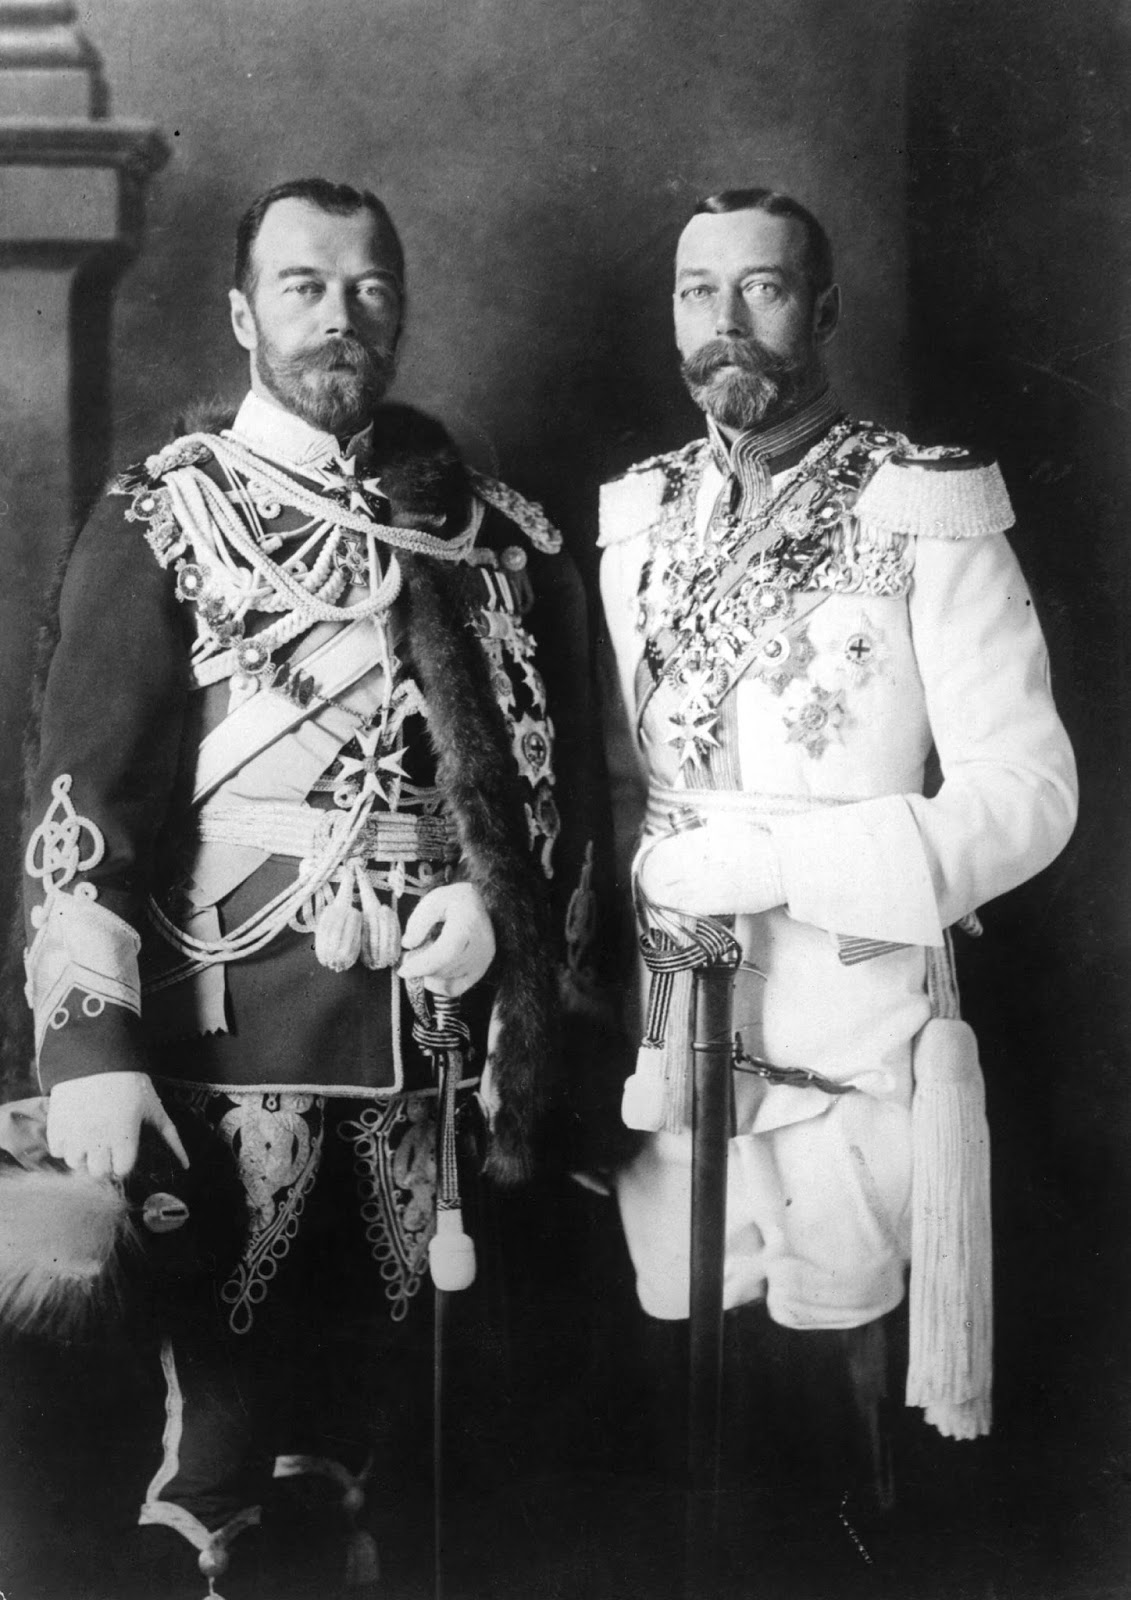 king george v and his physically similar cousin tsar nicholas ii in